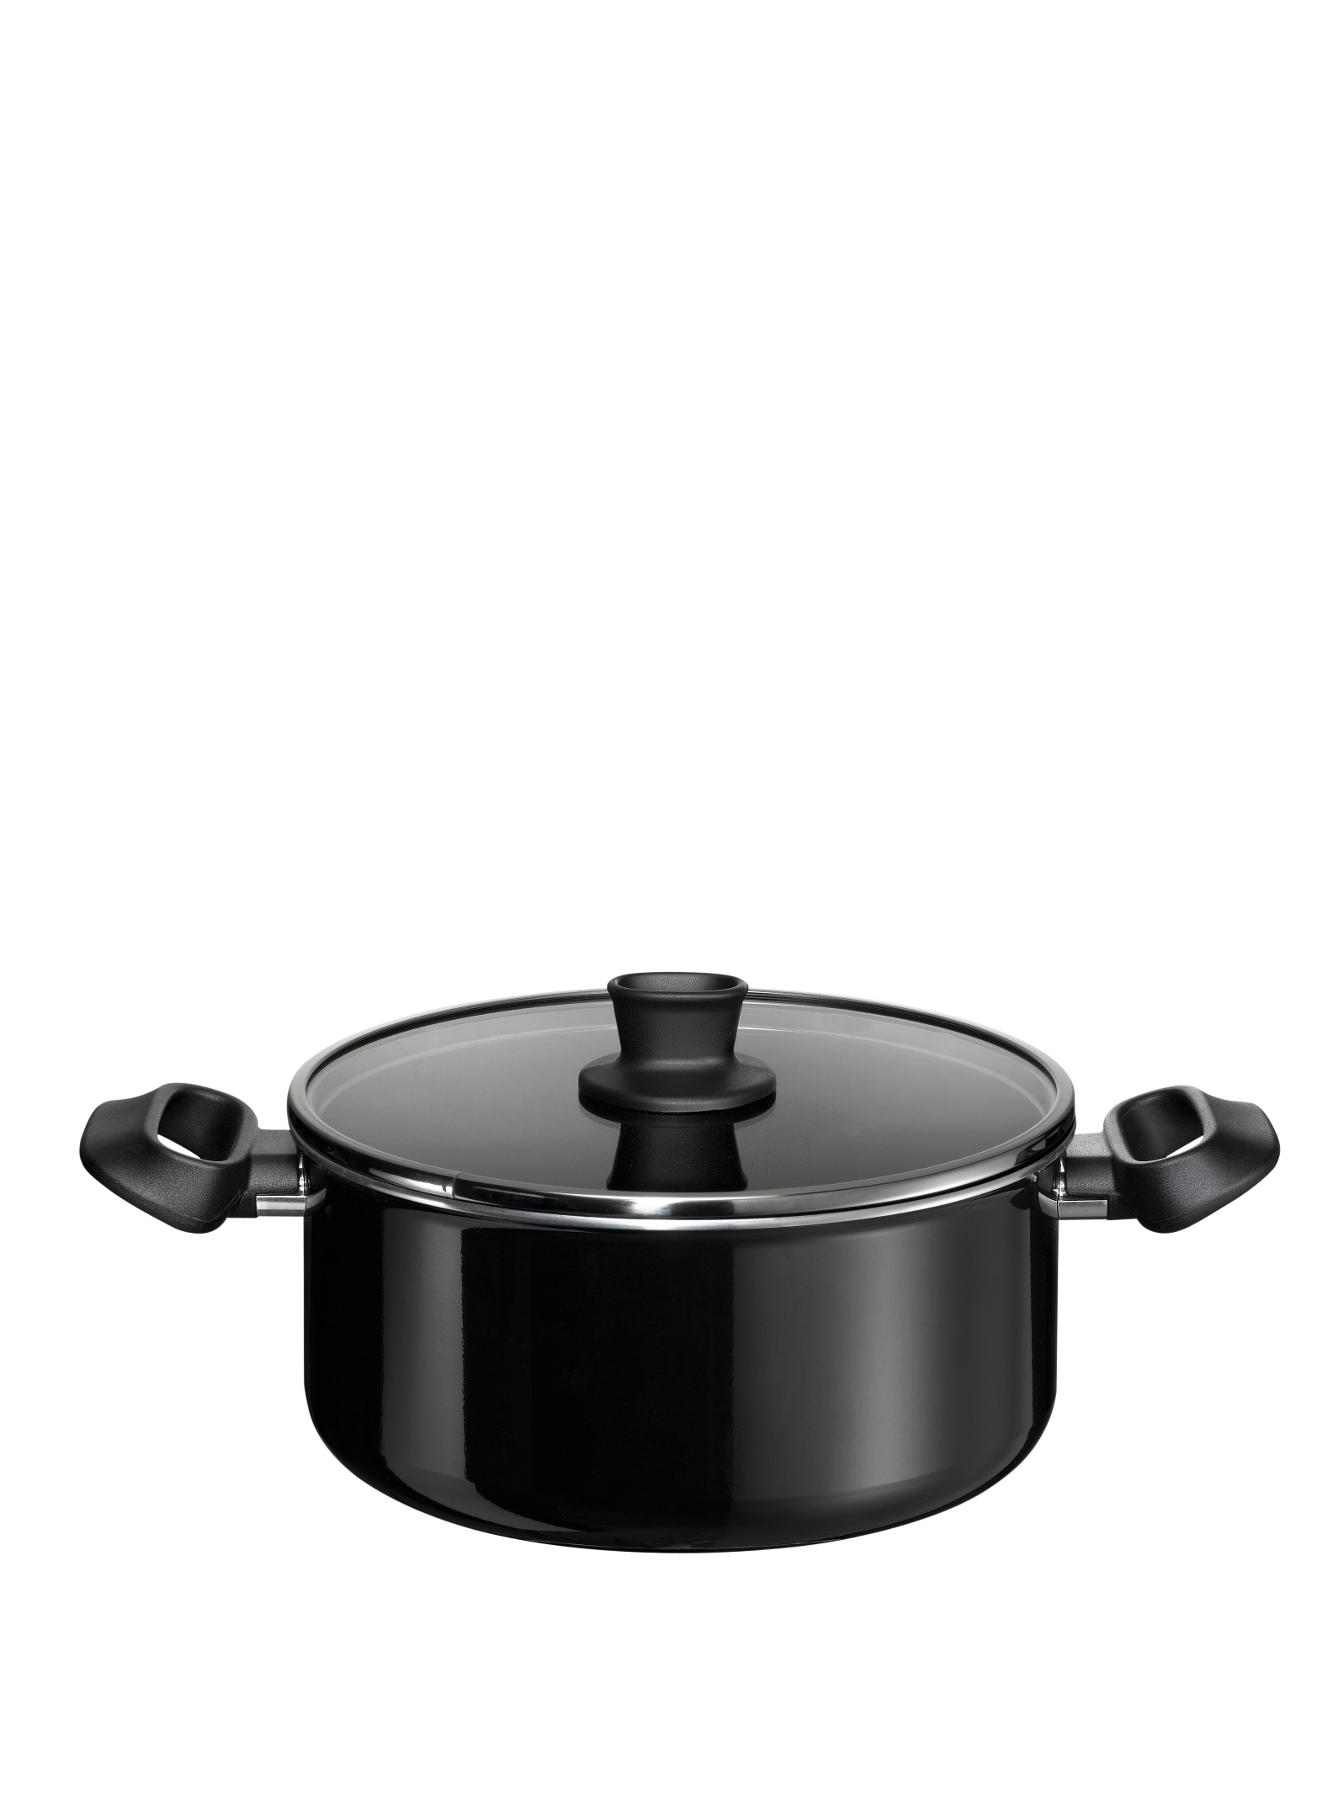 Tefal Initiative 24 cm Stewpot and Lid